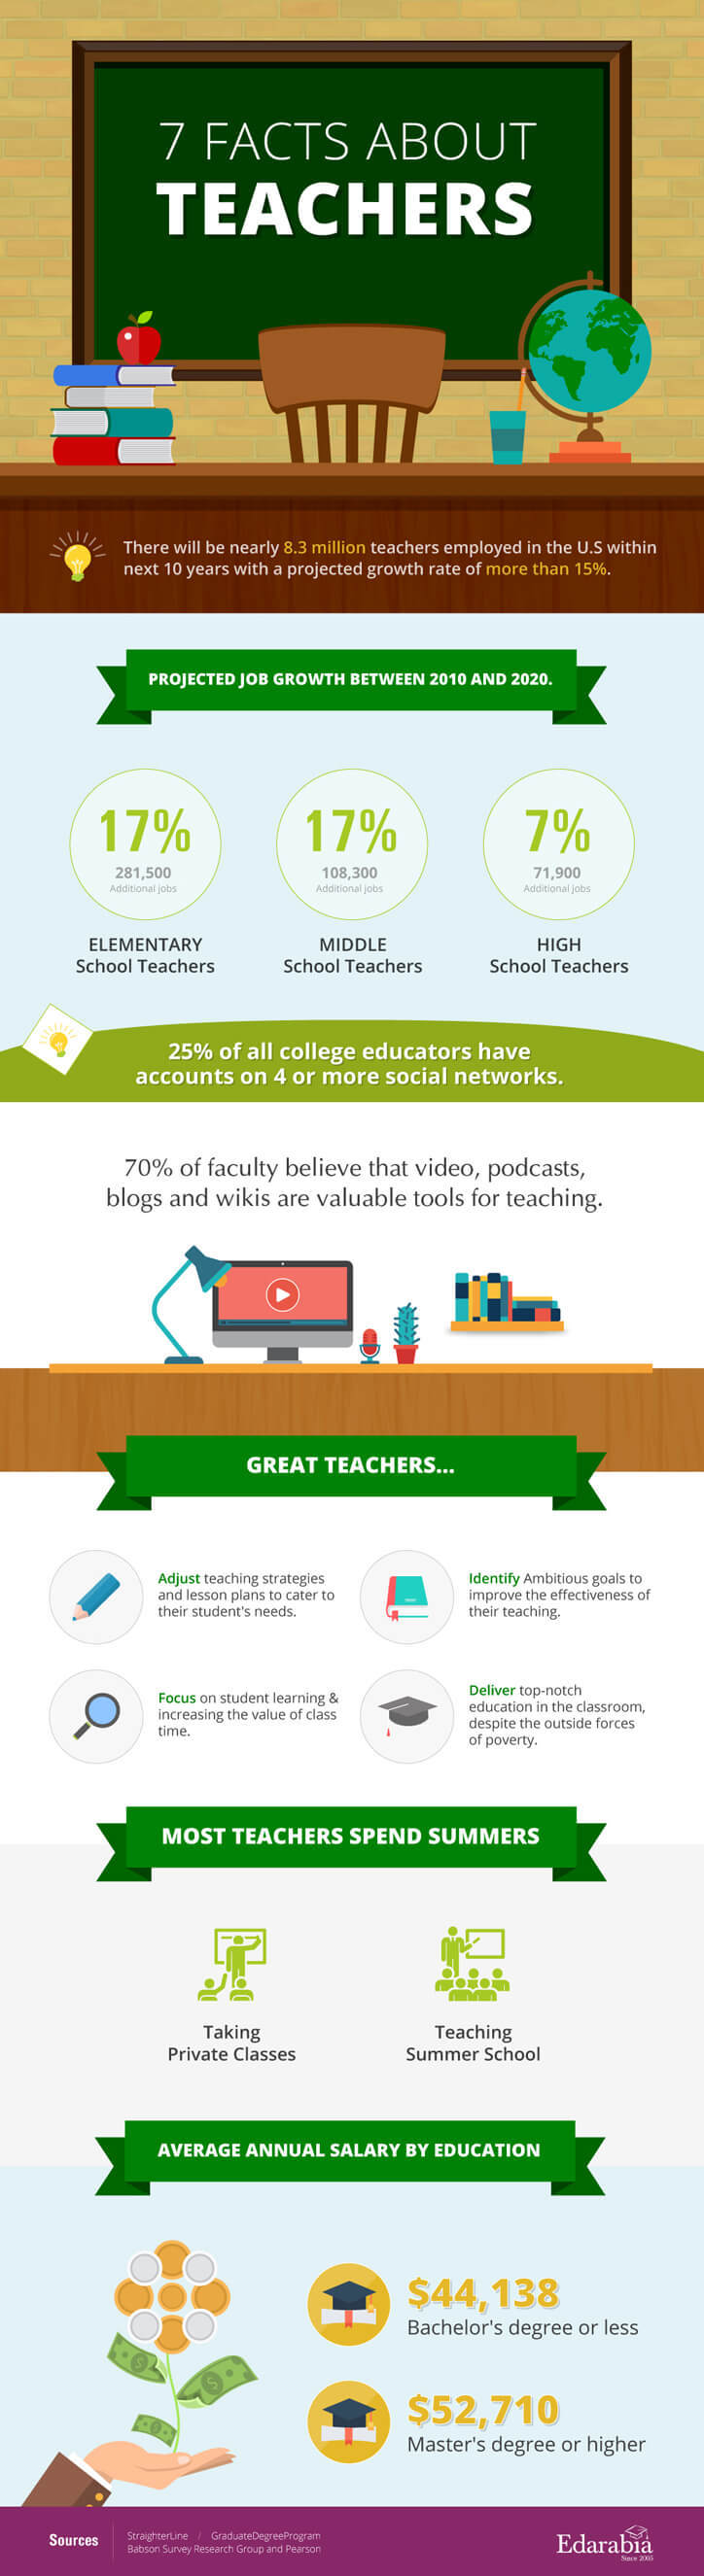 7 Facts Αbout Teachers Infographic